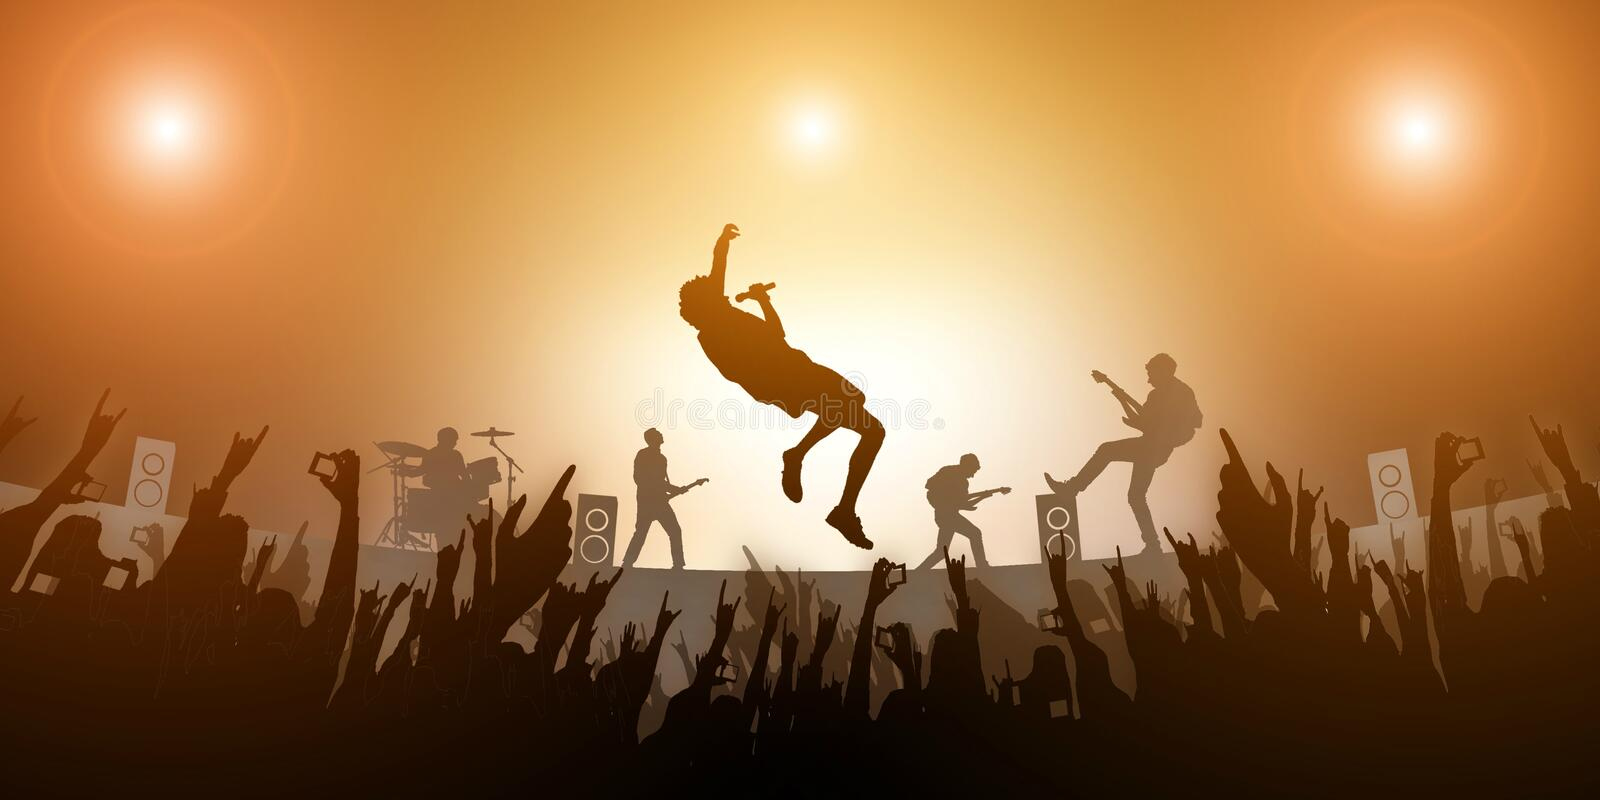 Concert Crowd Party and Music Band Festival Abstract Amber light on Background royalty free illustration